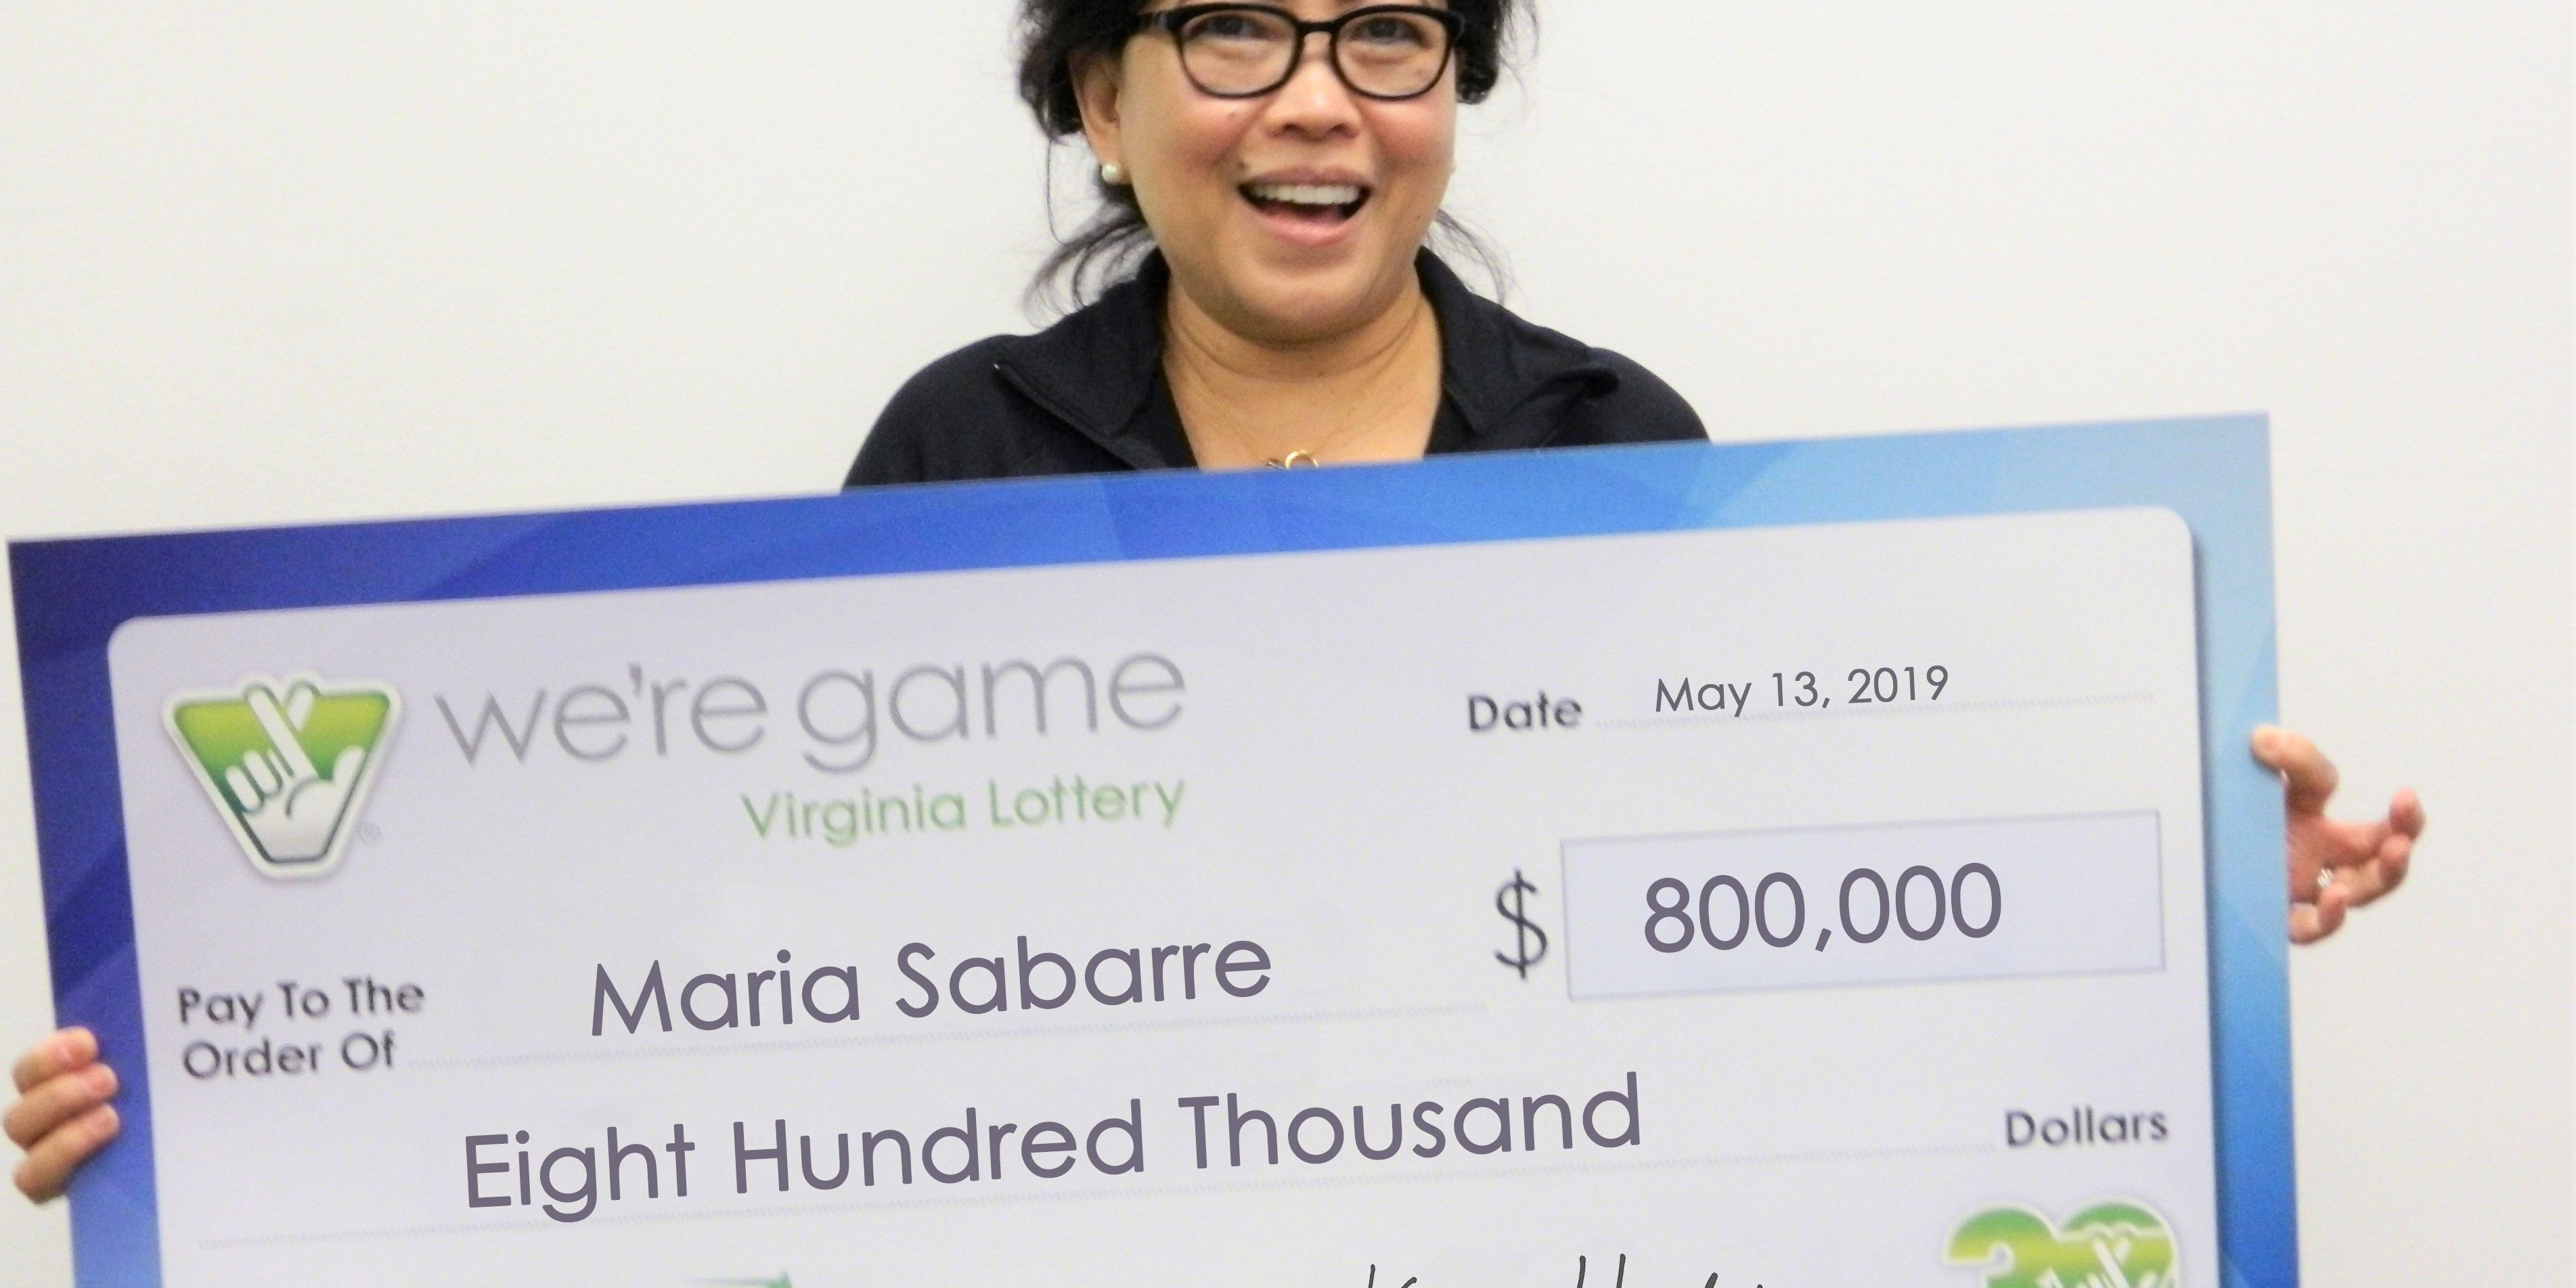 Woman wins $800K in Virginia Lottery on Mother's Day